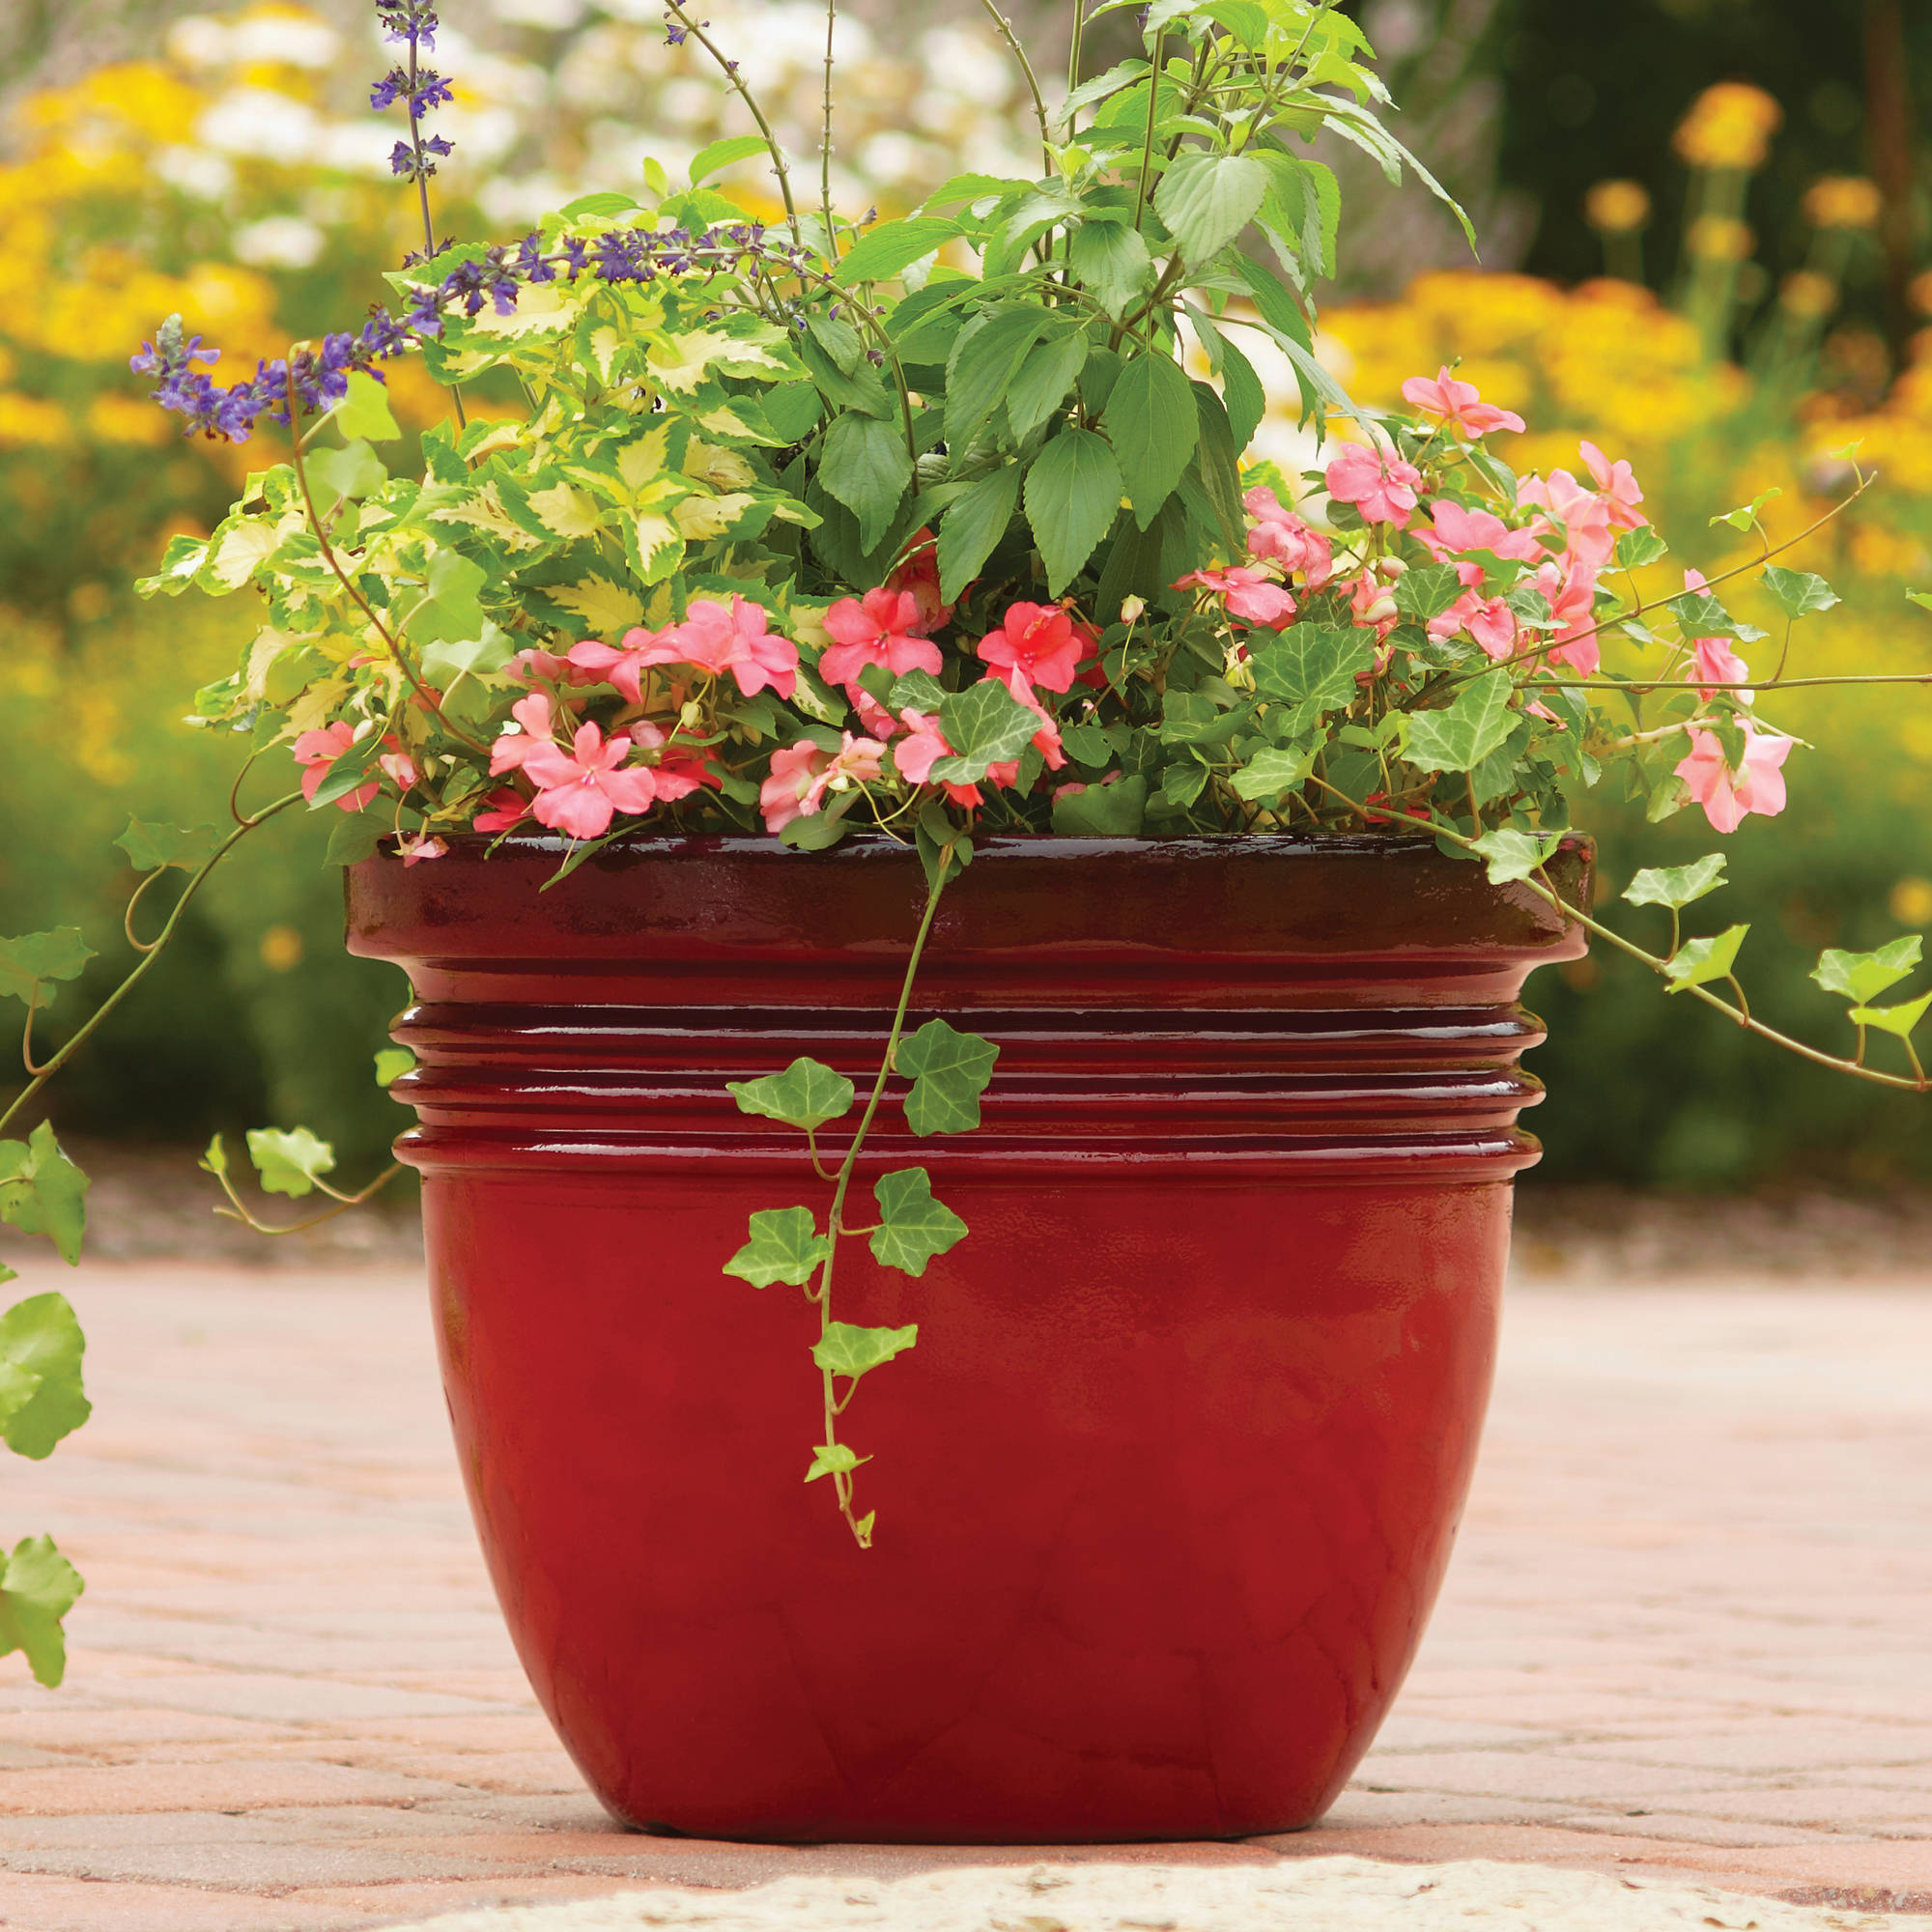 Better Homes and Gardens Bombay Decorative Planter  Red Sedona  Multiple  Sizes   Walmart com. Better Homes and Gardens Bombay Decorative Planter  Red Sedona